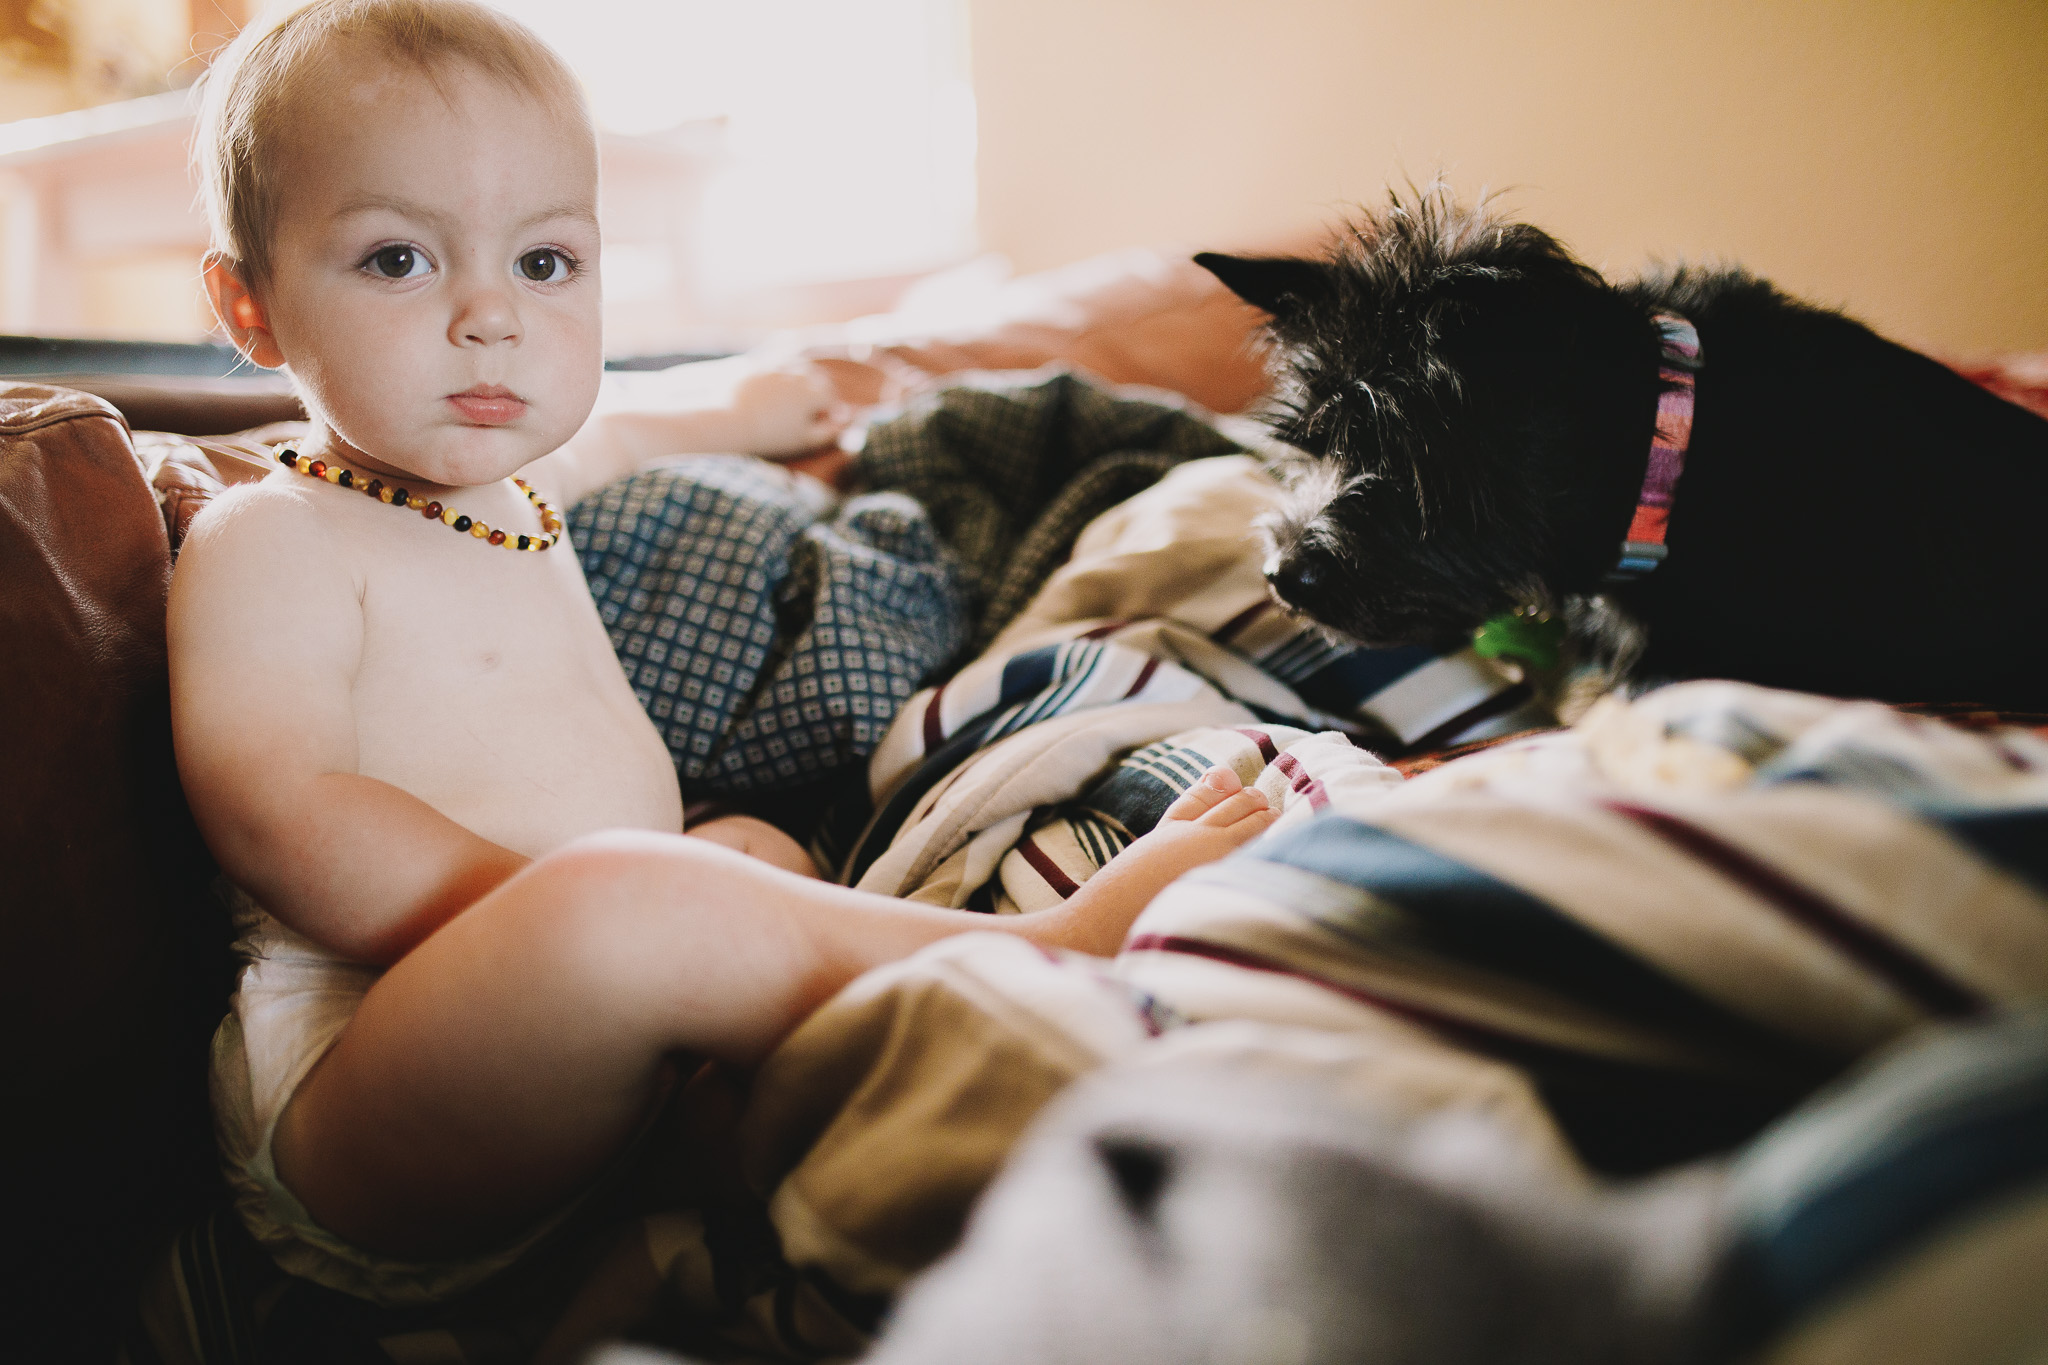 Archer_Inspired_Photography_Morgan_Hill_October_Family_Lifestyle_Archer_Jacob-68.jpg